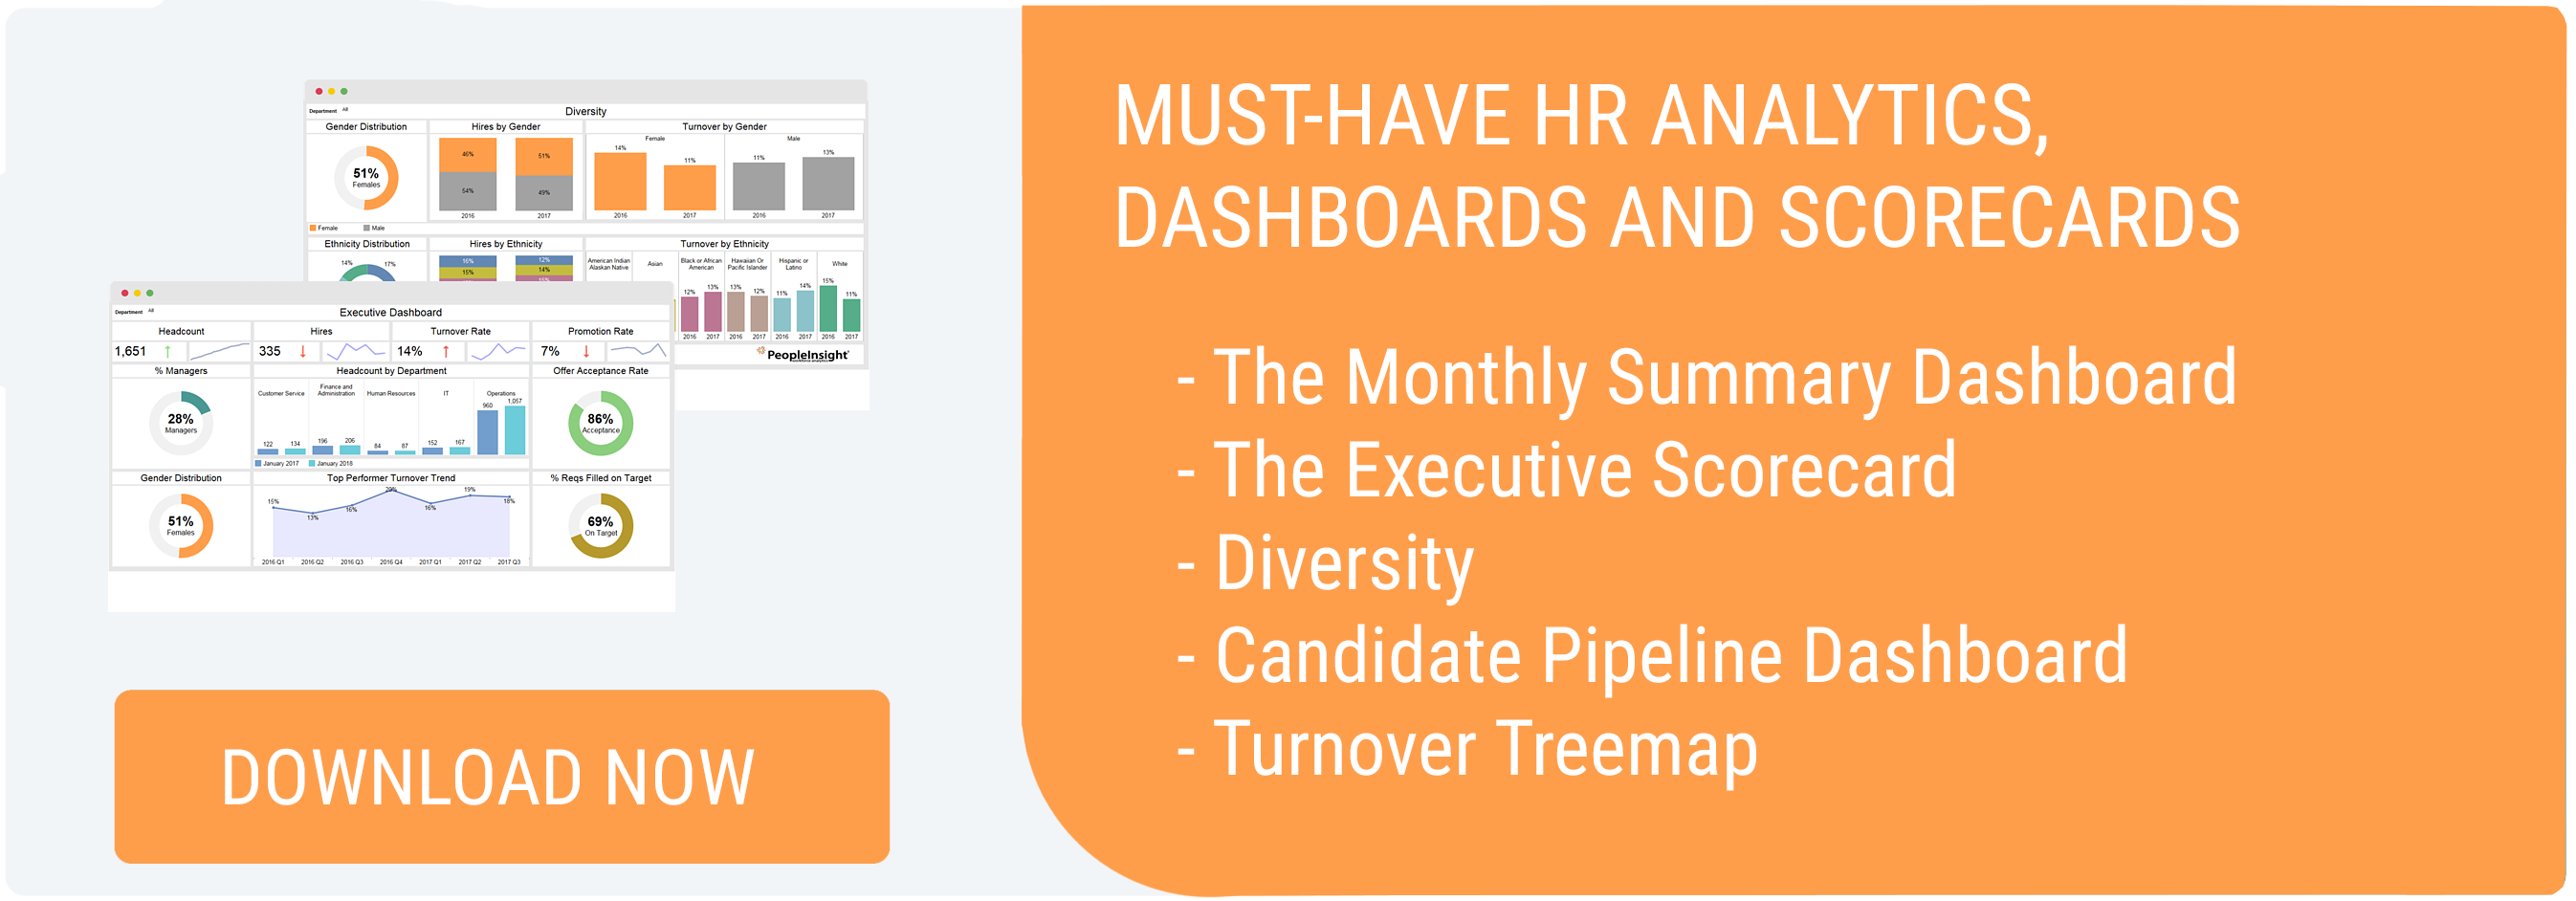 Must-have HR analytics, dashboards and scorecards